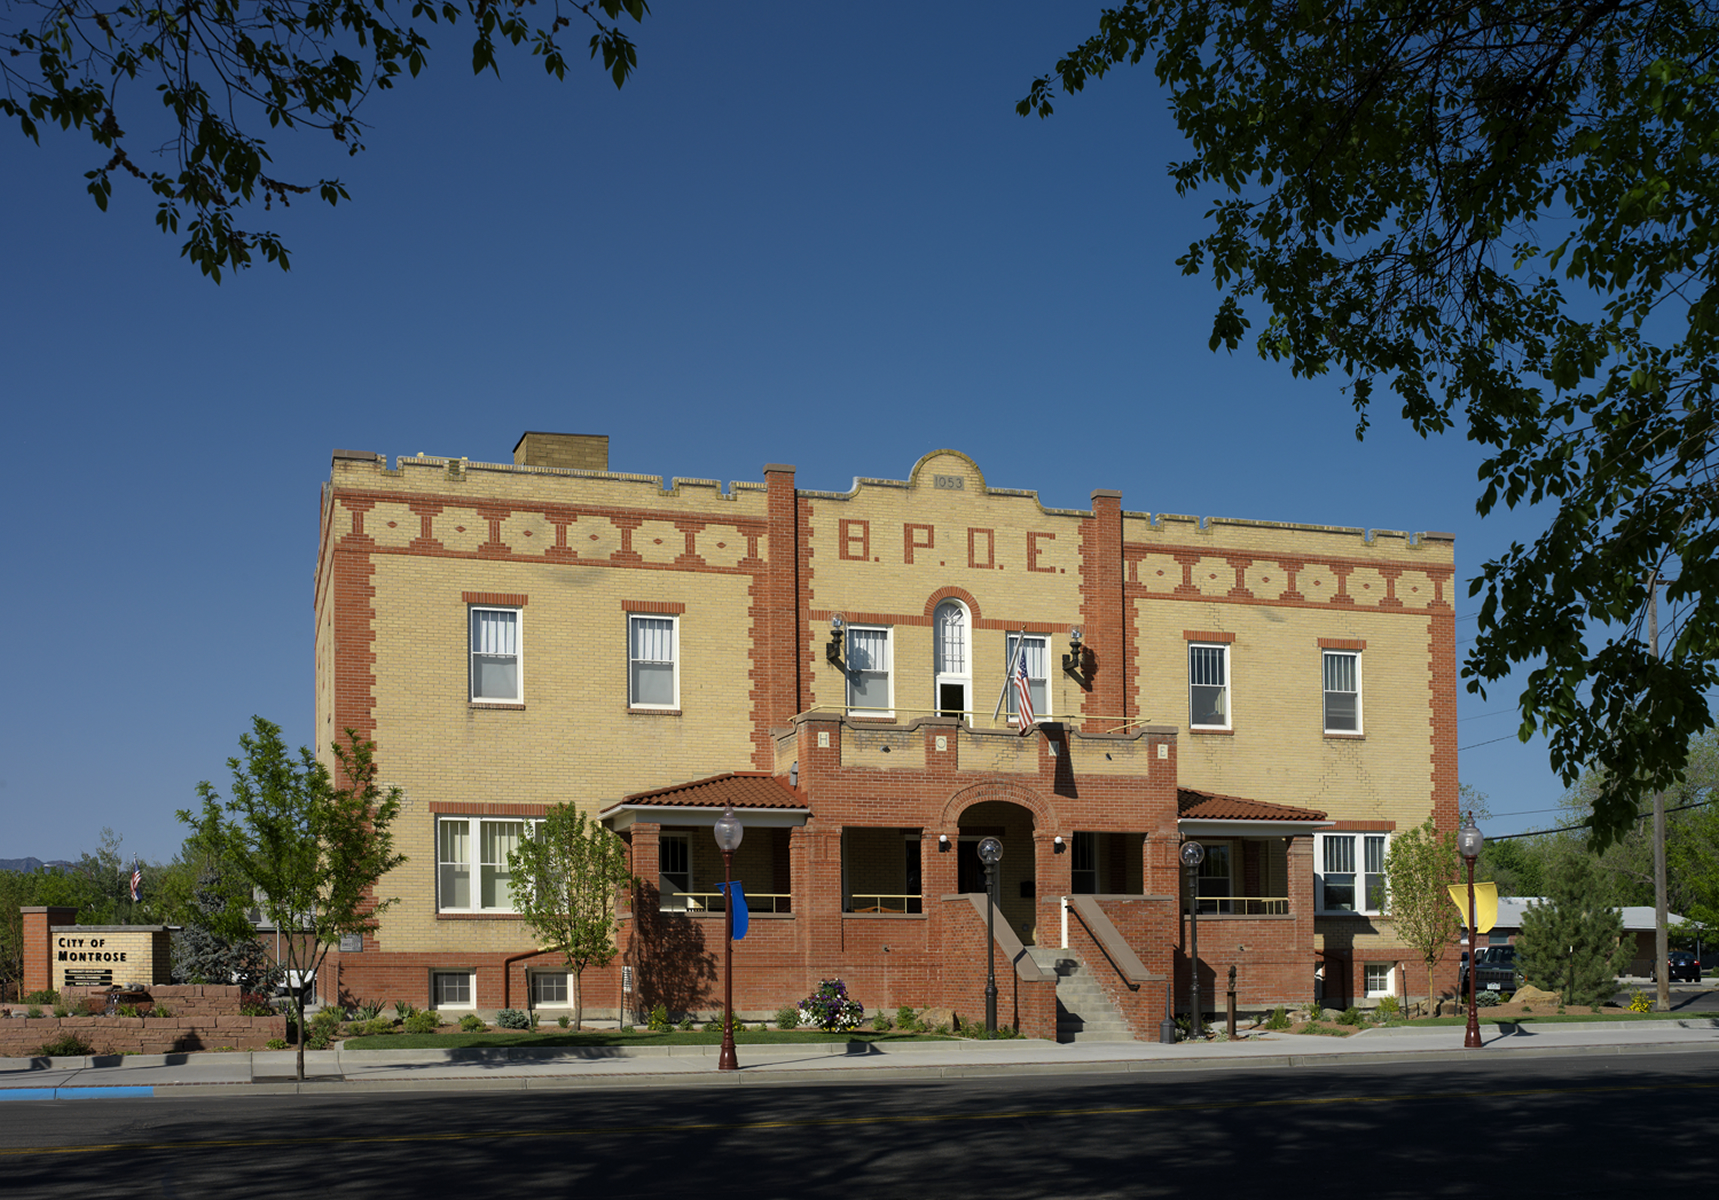 The Elks Lodge in Montrose, Colorado, an award winning adaptive reuse project, now serves as a municipal services center and meeting venue. The restoration included the installation of a renewable energy geo-exchange system for heating and cooling.